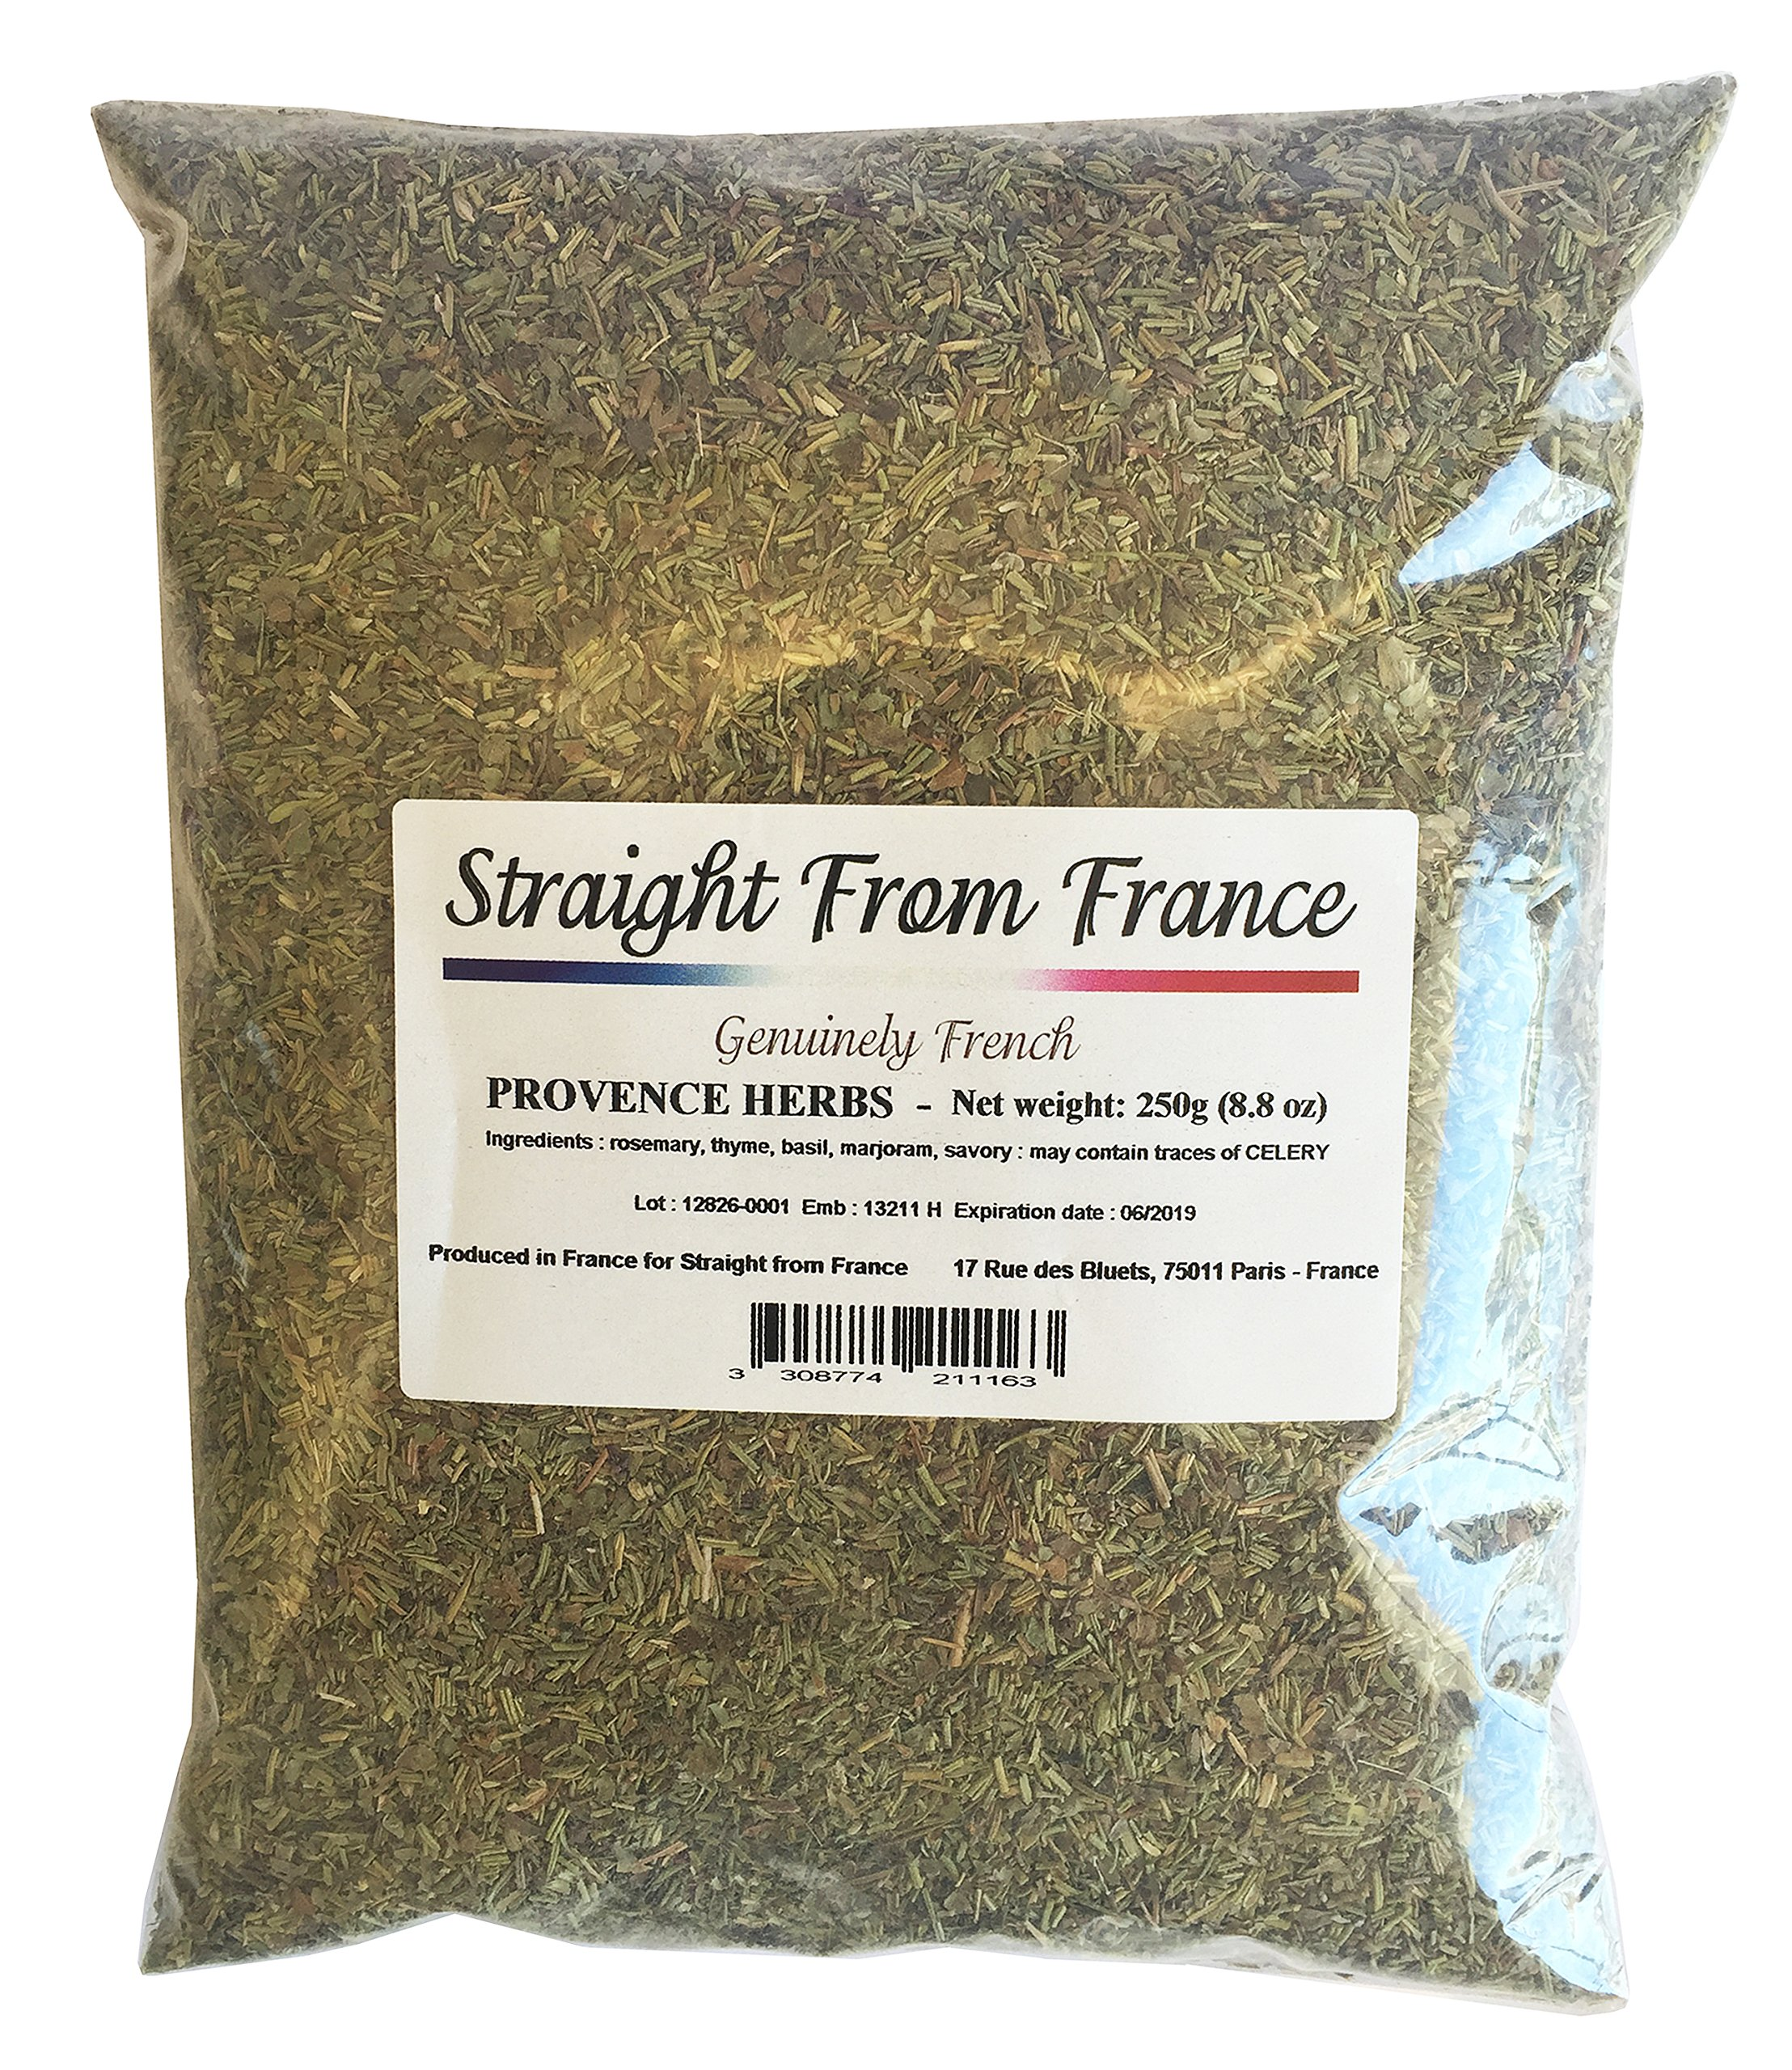 Straight From France - Provence Herbs from France 8.8oz